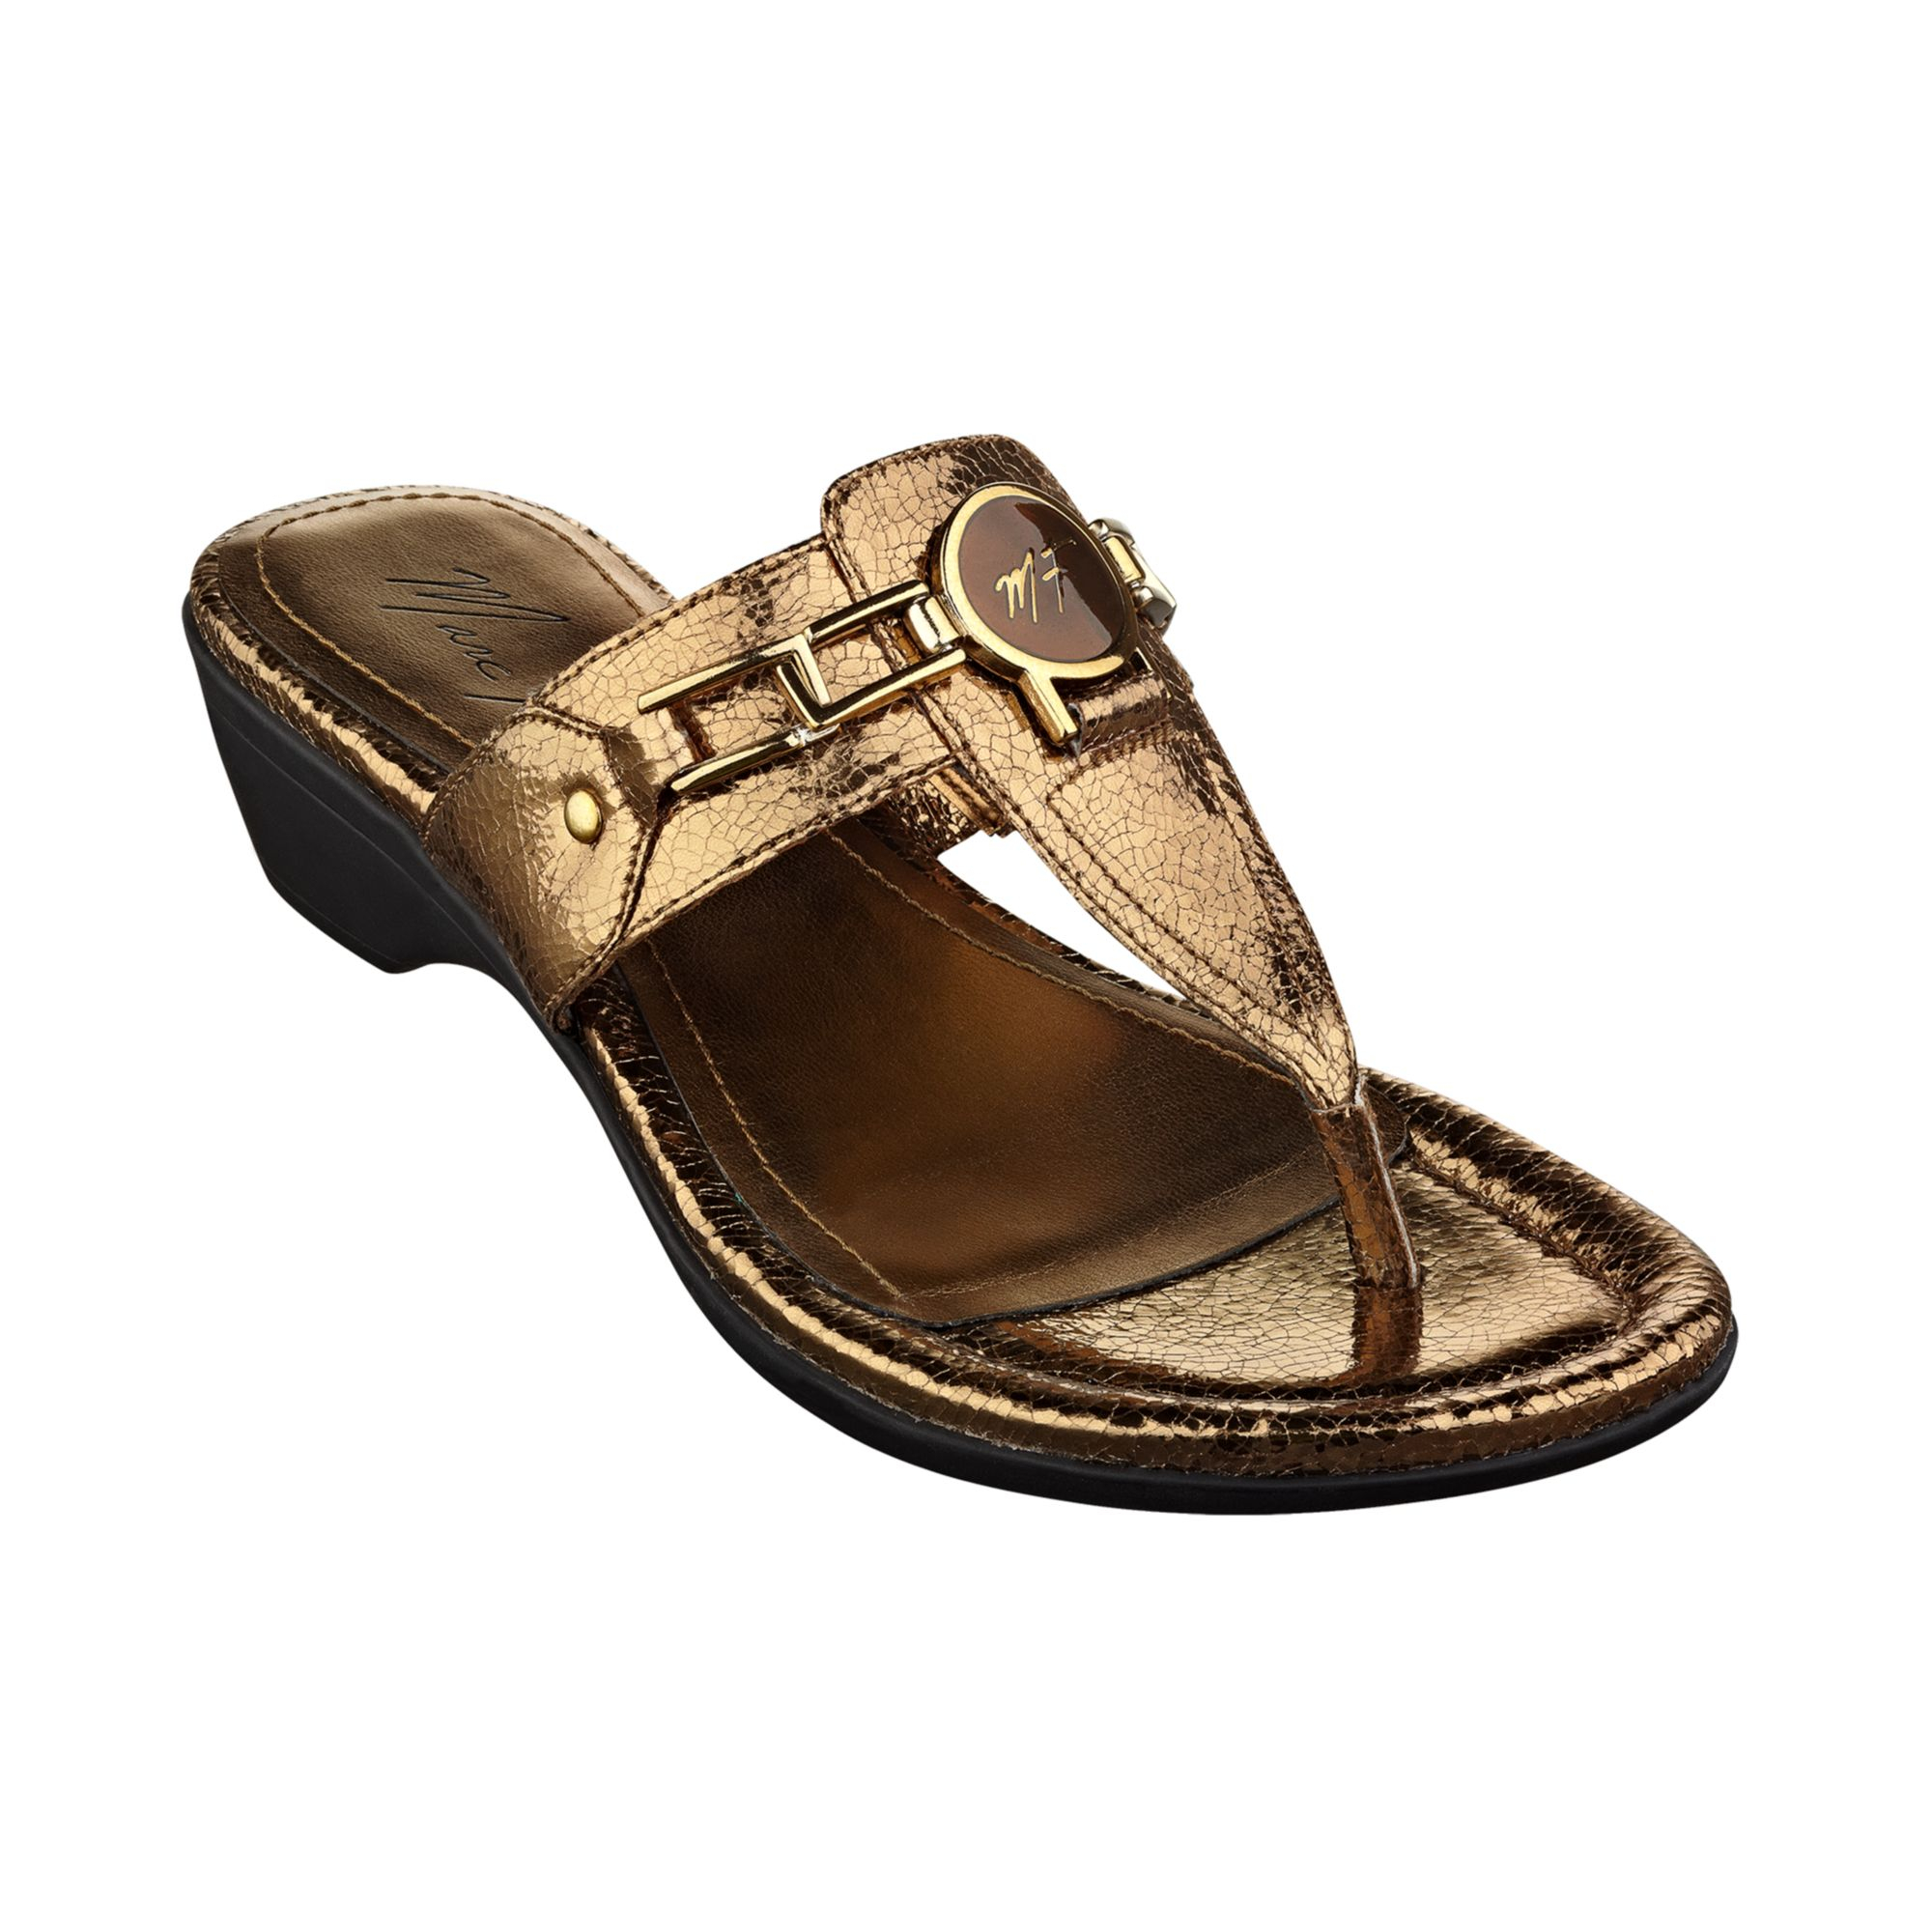 Marc Fisher Amina Thong Sandals In Gold Bronze Crackle